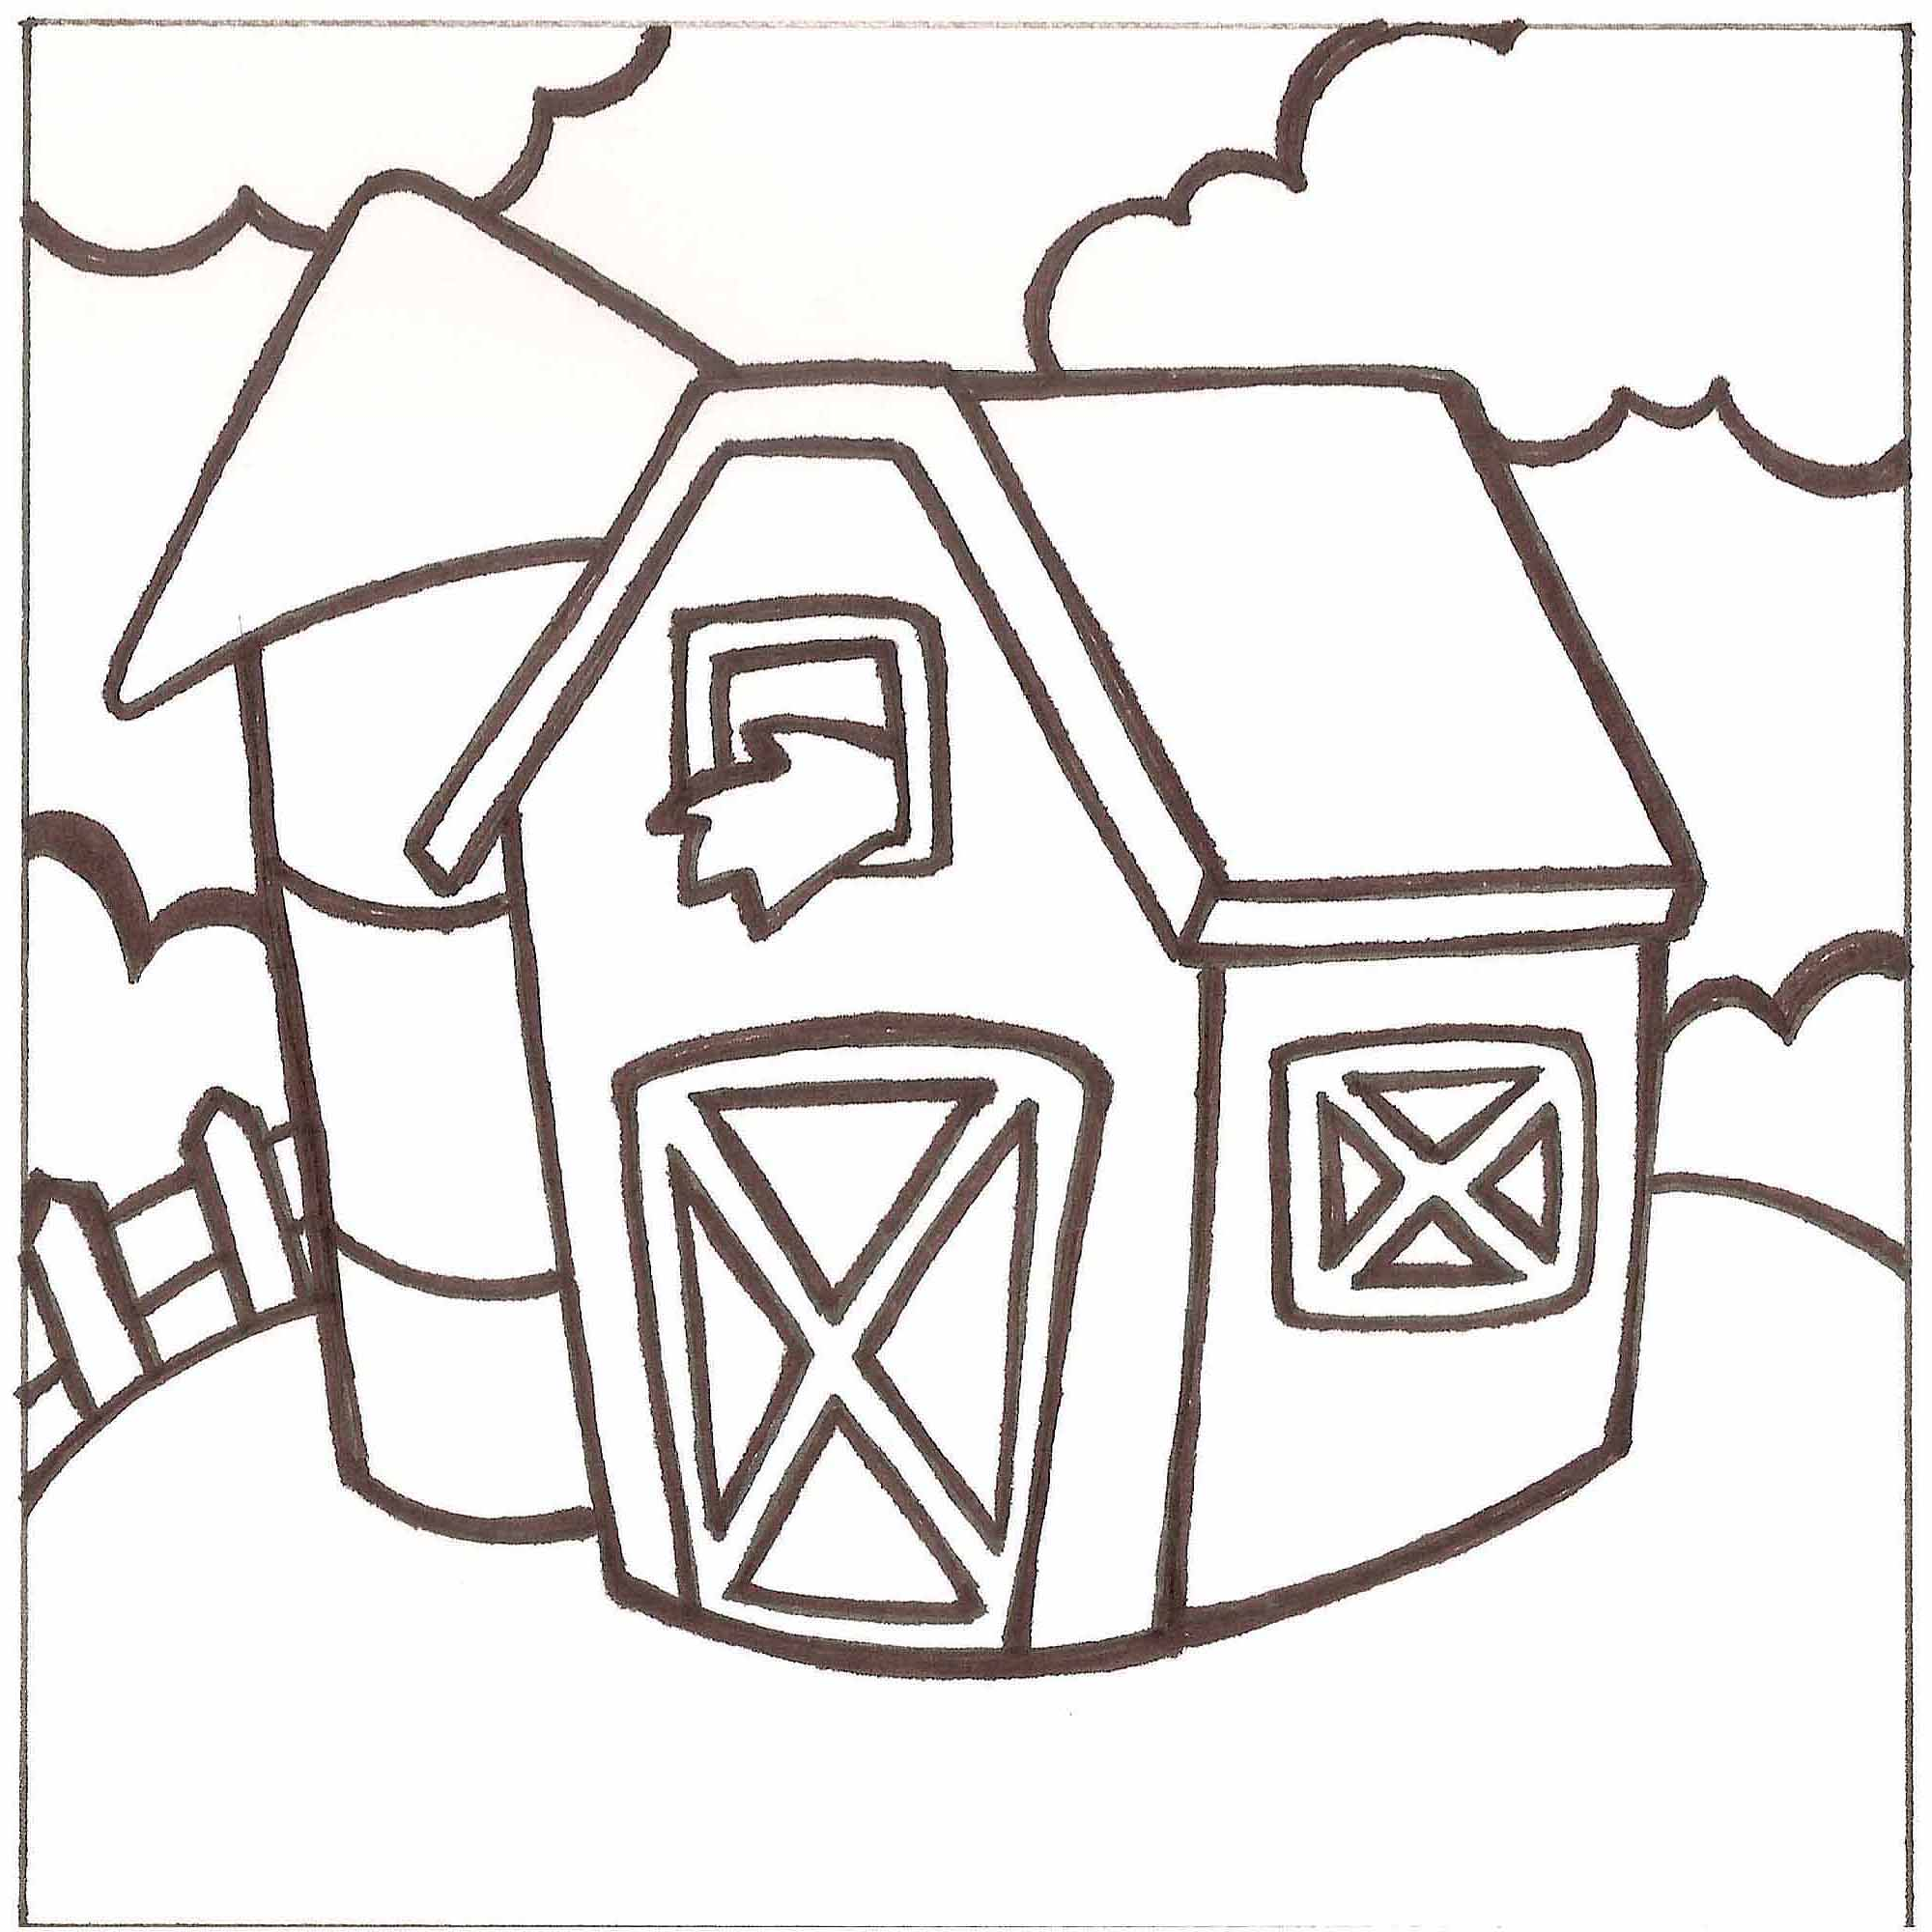 Paint-a-Doodle 12 x 12 Barn Painting Kit